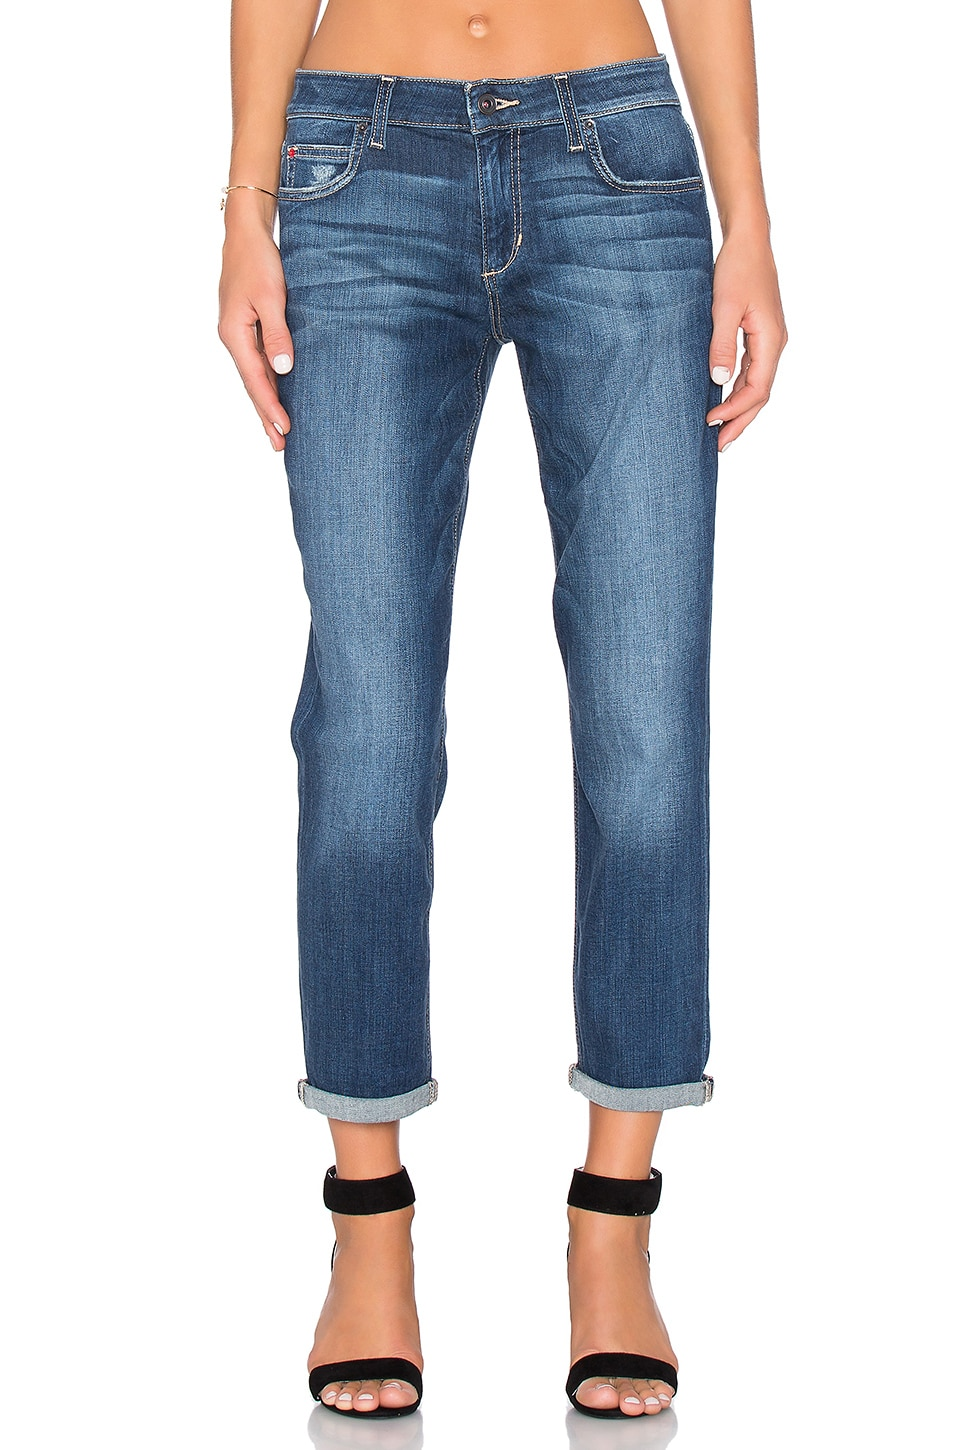 The Billie Ankle by Joe's Jeans